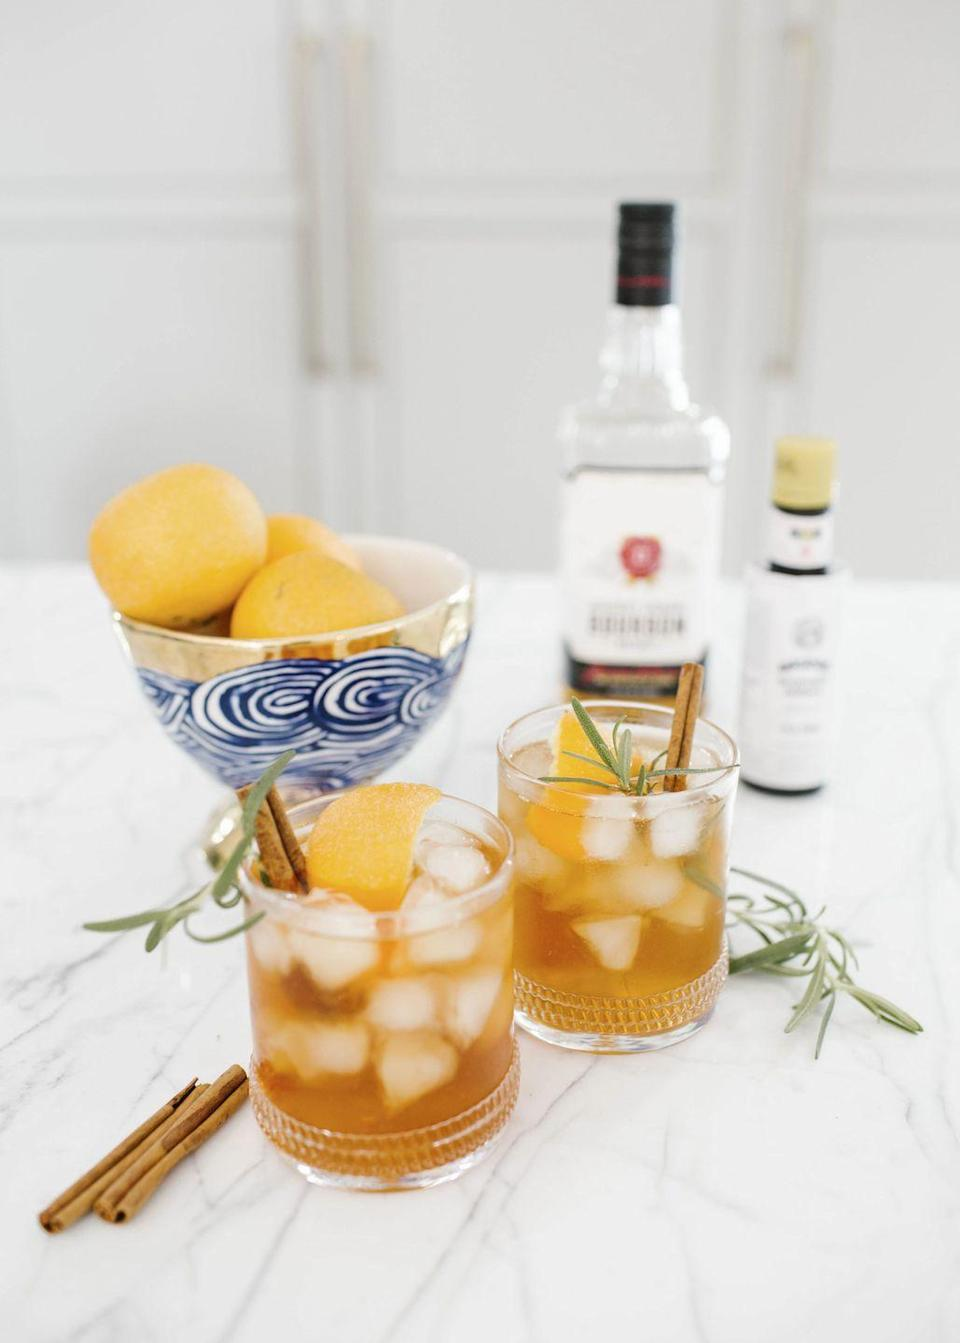 "<p>""This cinnamon-rosemary-bourbon old fashioned with homemade simple syrup is a delicate balance of sweet and tangy and makes the perfect libation for those crisp winter happy hours. Honey, rosemary, cinnamon, and orange are just a few of the warm flavors you'll find in this cocktail, creating a killer combination with a definite punch of bourbon."" -<a href=""https://www.graymalin.com/"" rel=""nofollow noopener"" target=""_blank"" data-ylk=""slk:Gray Malin"" class=""link rapid-noclick-resp"">Gray Malin</a>, fine art photographer</p><p>Get Gray's recipe for this holiday sip <a href=""https://www.graymalin.com/lifestyle/cinnamon-rosemary-bourbon-old-fashioned"" rel=""nofollow noopener"" target=""_blank"" data-ylk=""slk:here"" class=""link rapid-noclick-resp"">here</a>.</p>"